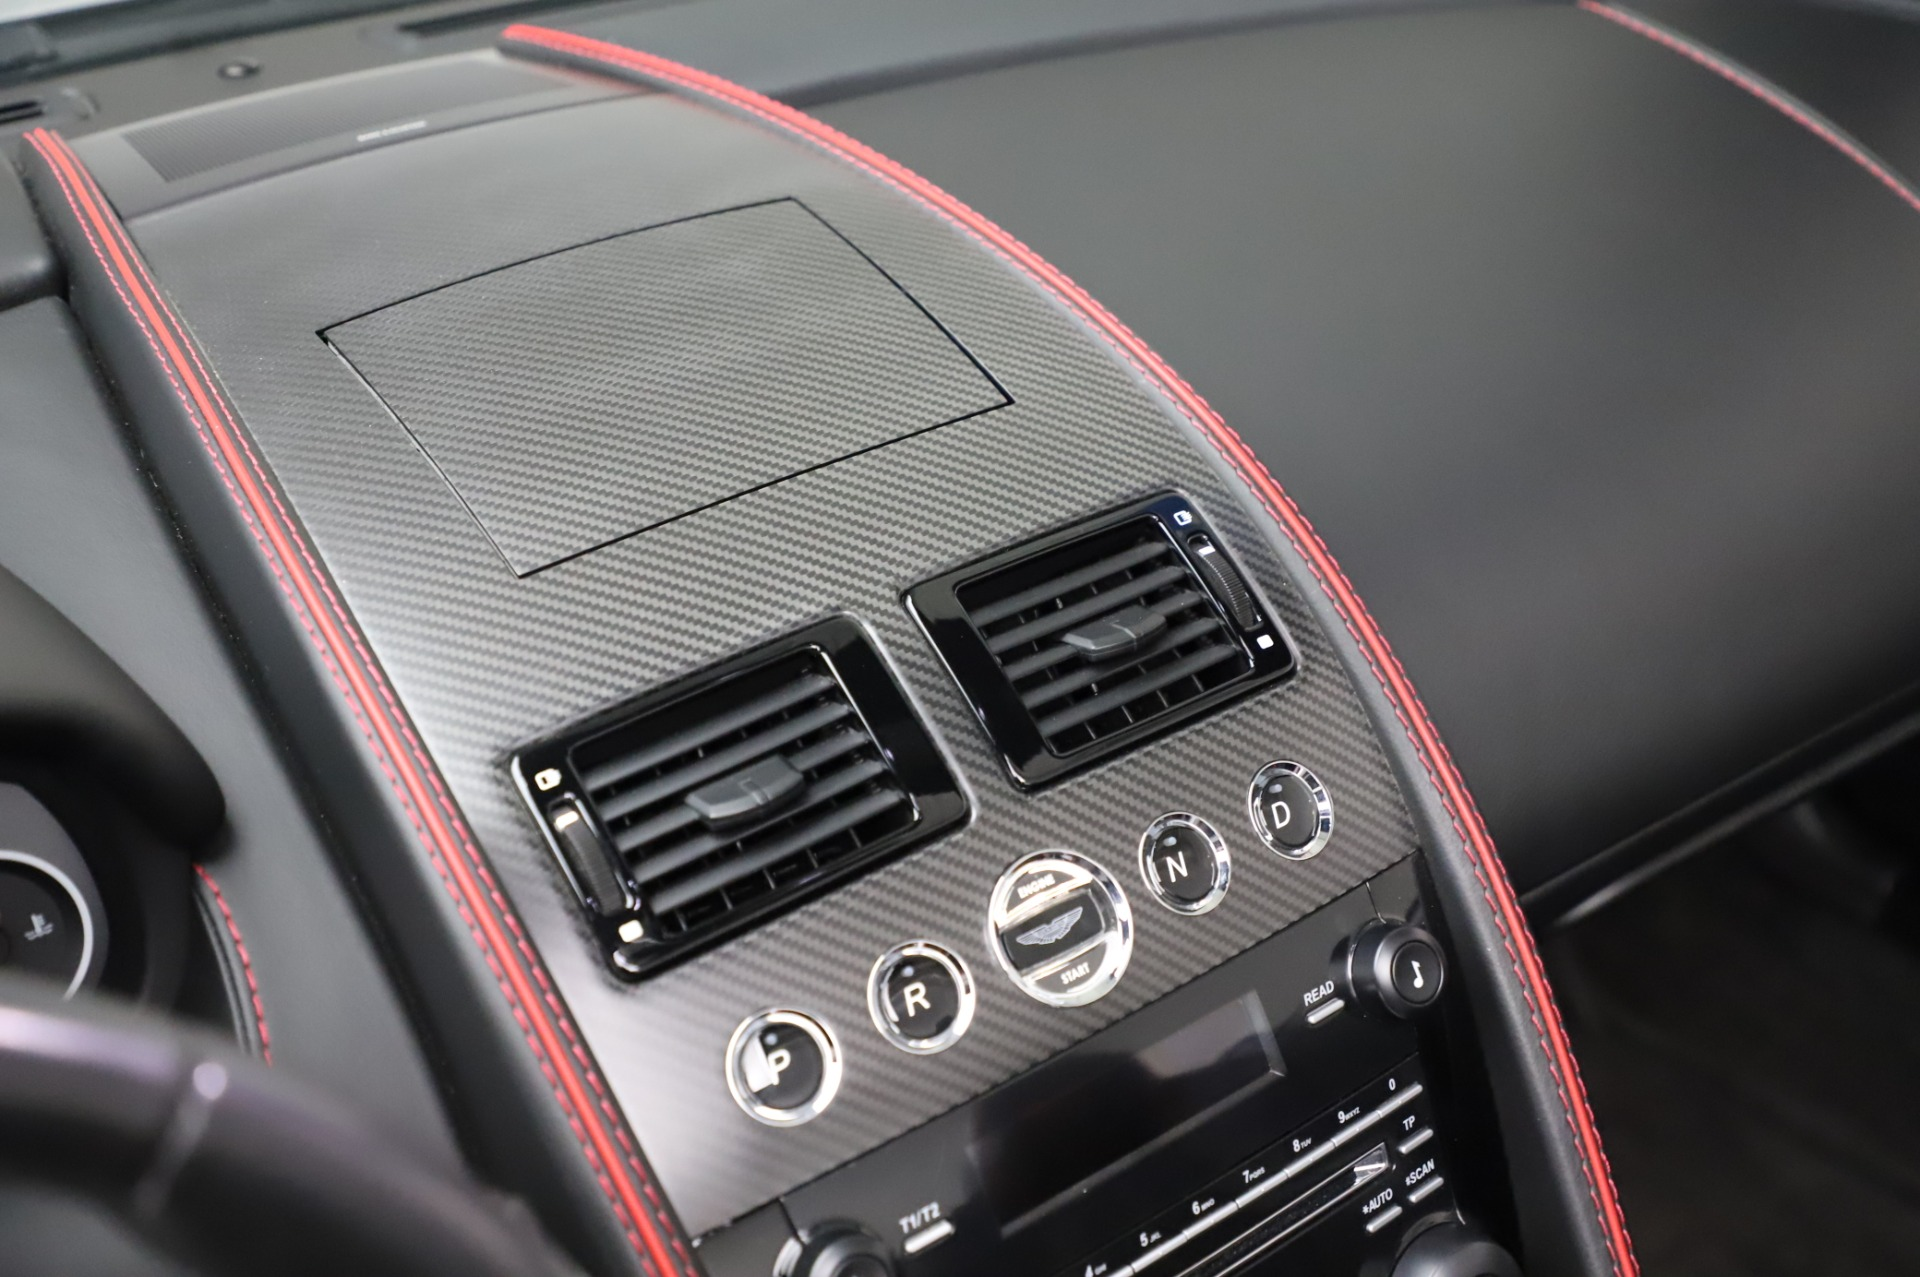 Used 2015 Aston Martin DB9 Carbon Edition Volante For Sale In Westport, CT 1919_p29